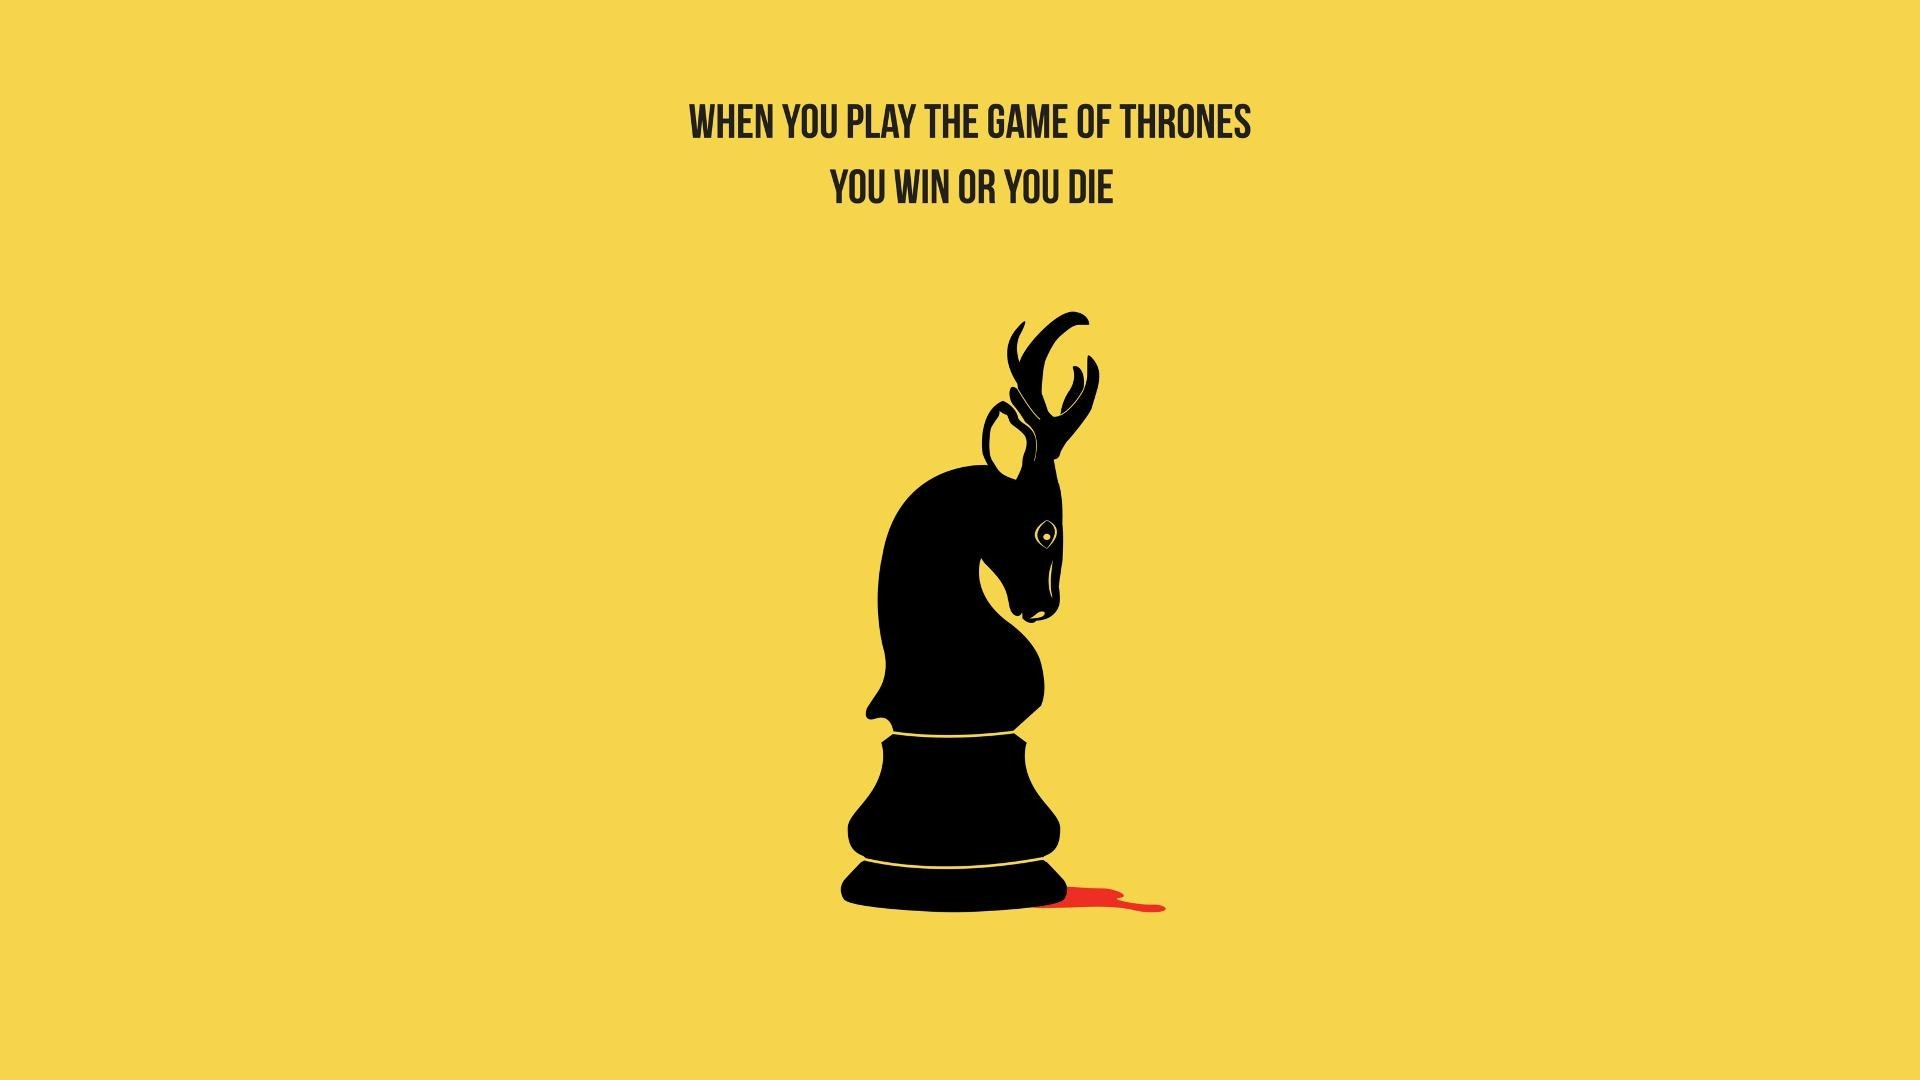 640x960 Game Of Thrones Typography 2 Iphone 4 Iphone 4s Hd 4k